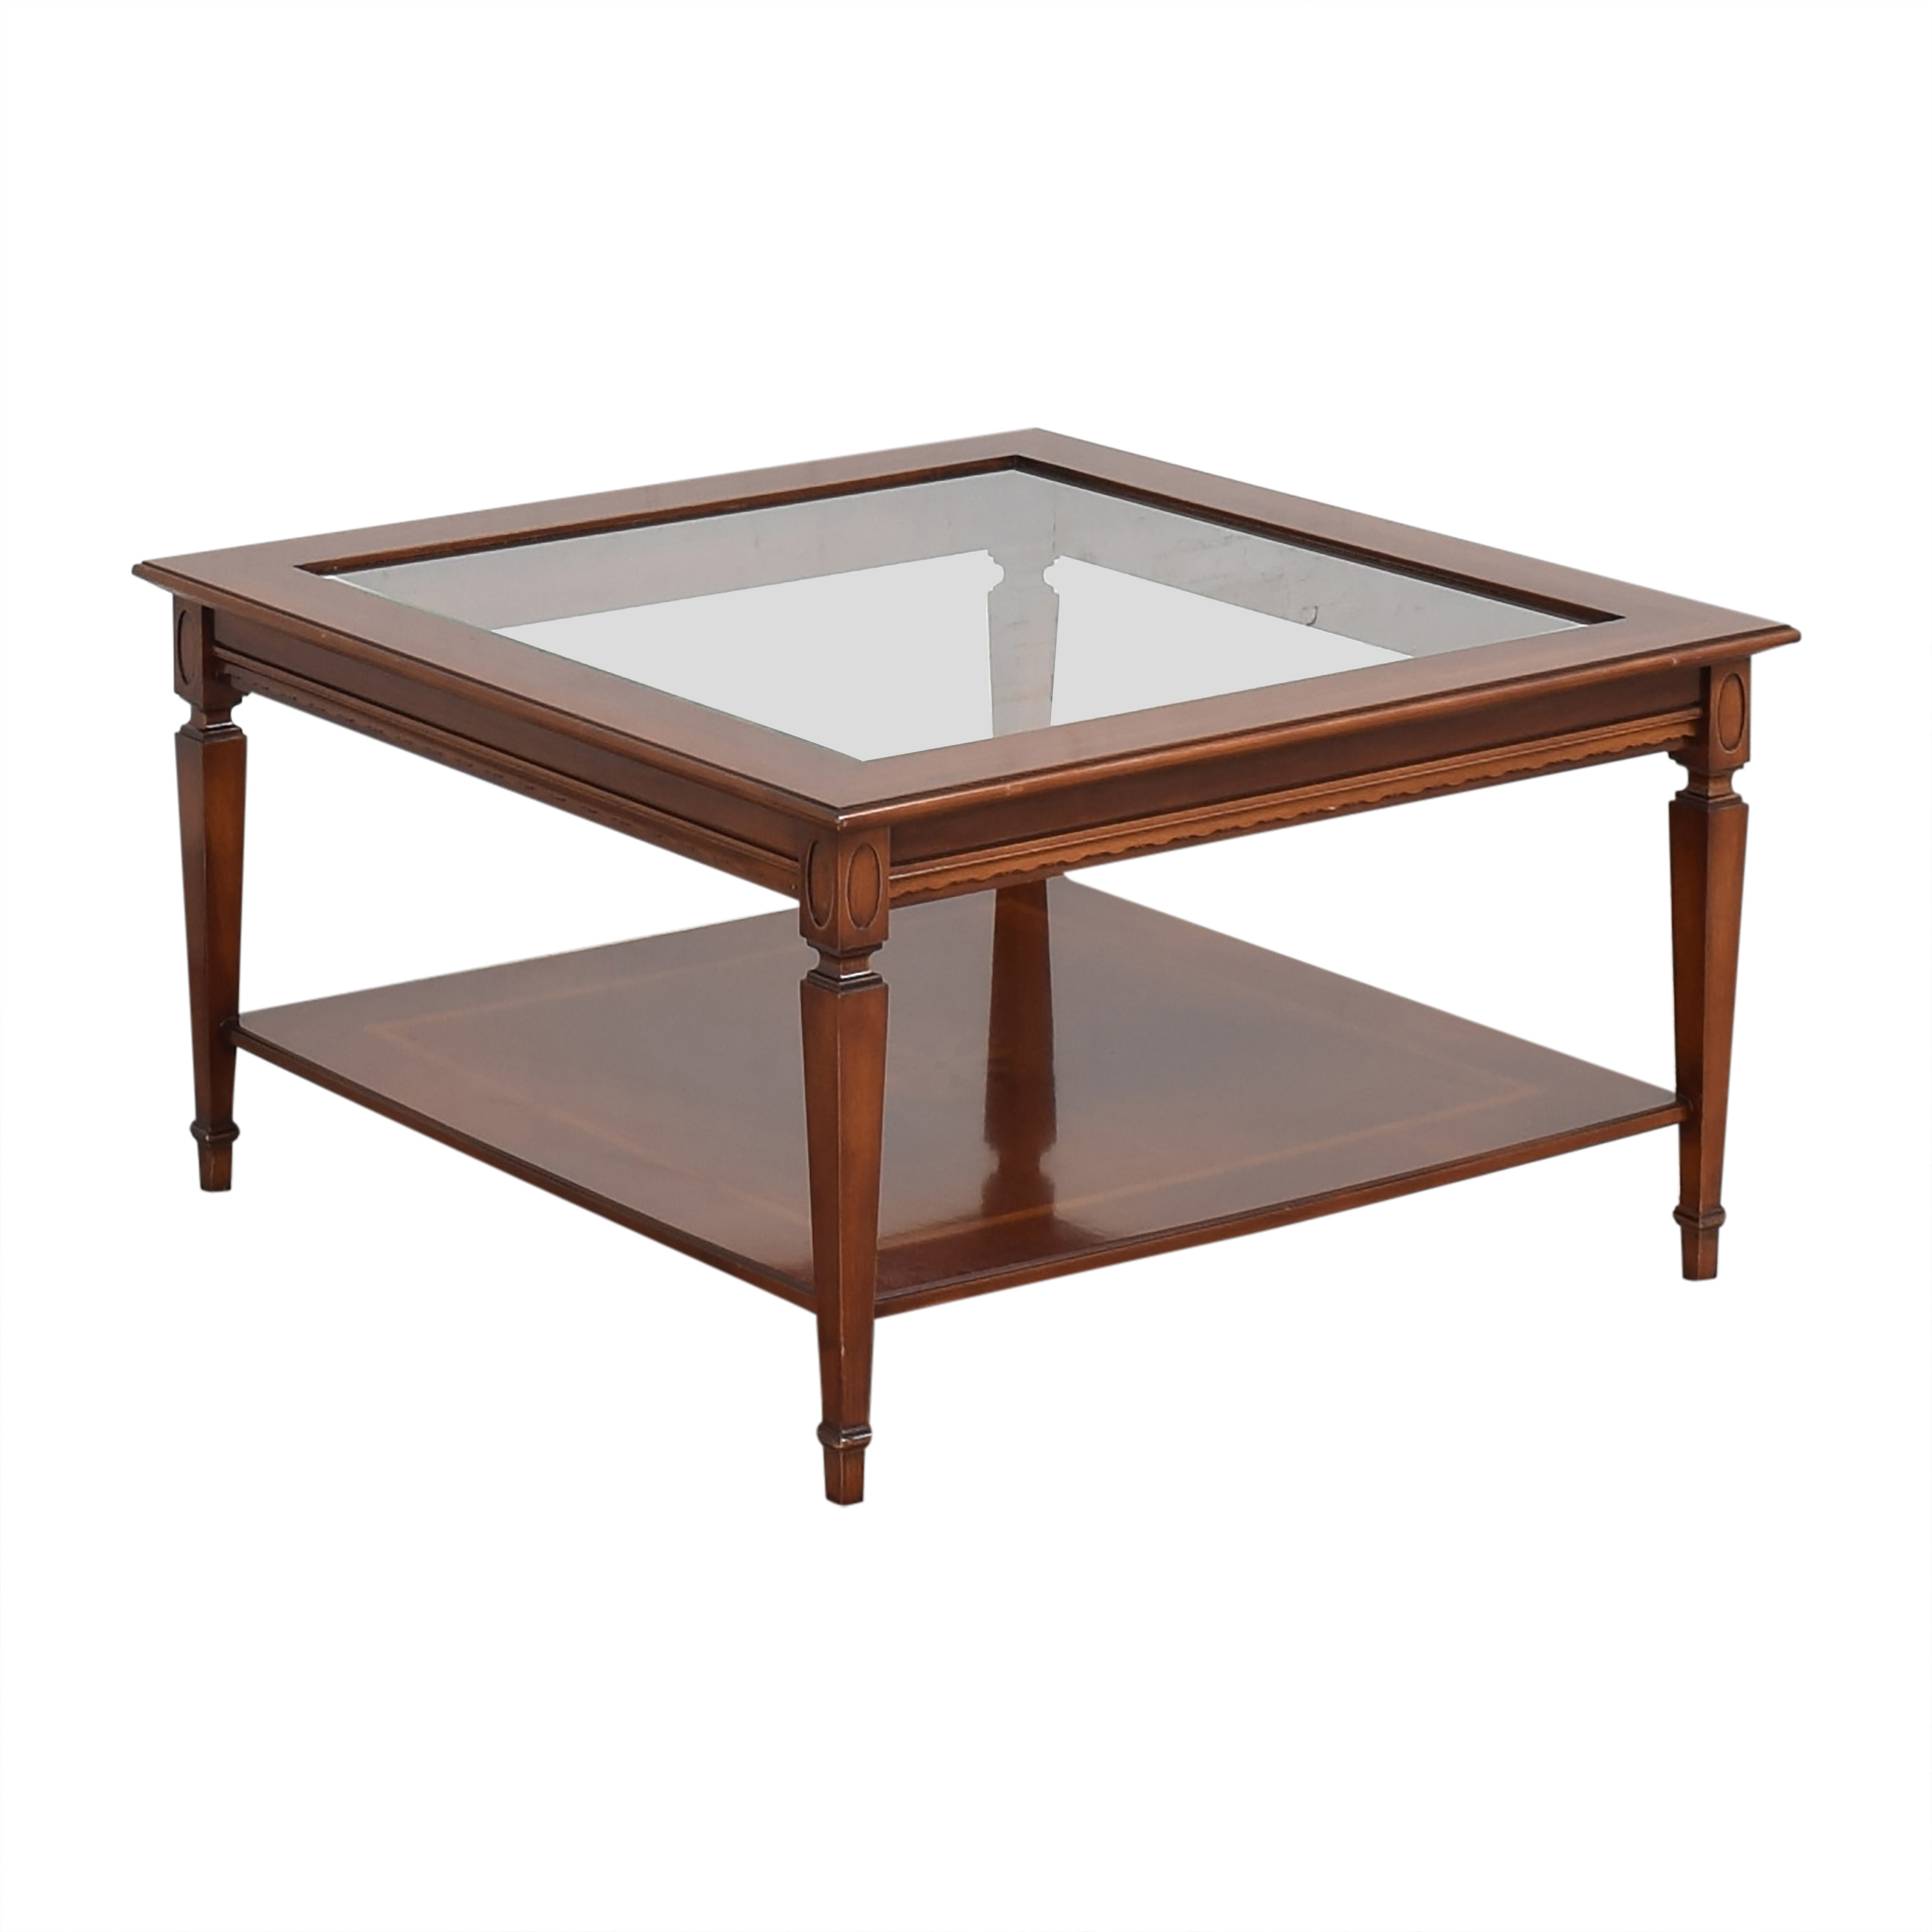 Maurice Villency Maurice Villency Square Coffee Table used